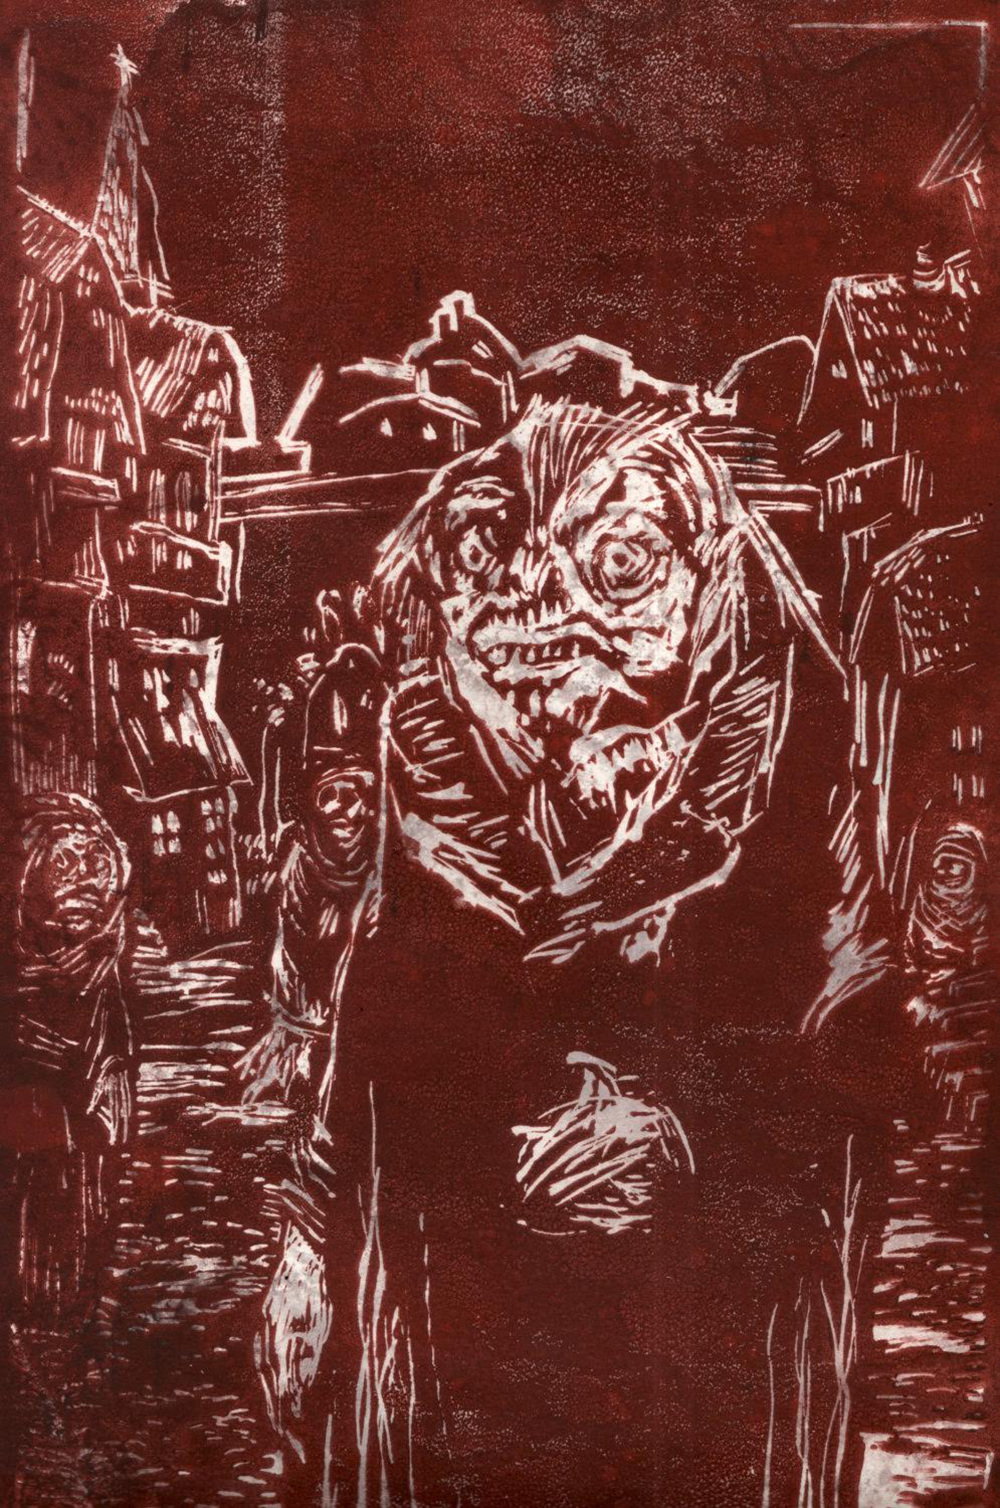 """The residents of the town of Innsmouth are notorious for a certain 'look,' which is the result of interbreeding with sea monsters,"" by David Gassaway, 2015. Acrylic monoprint."